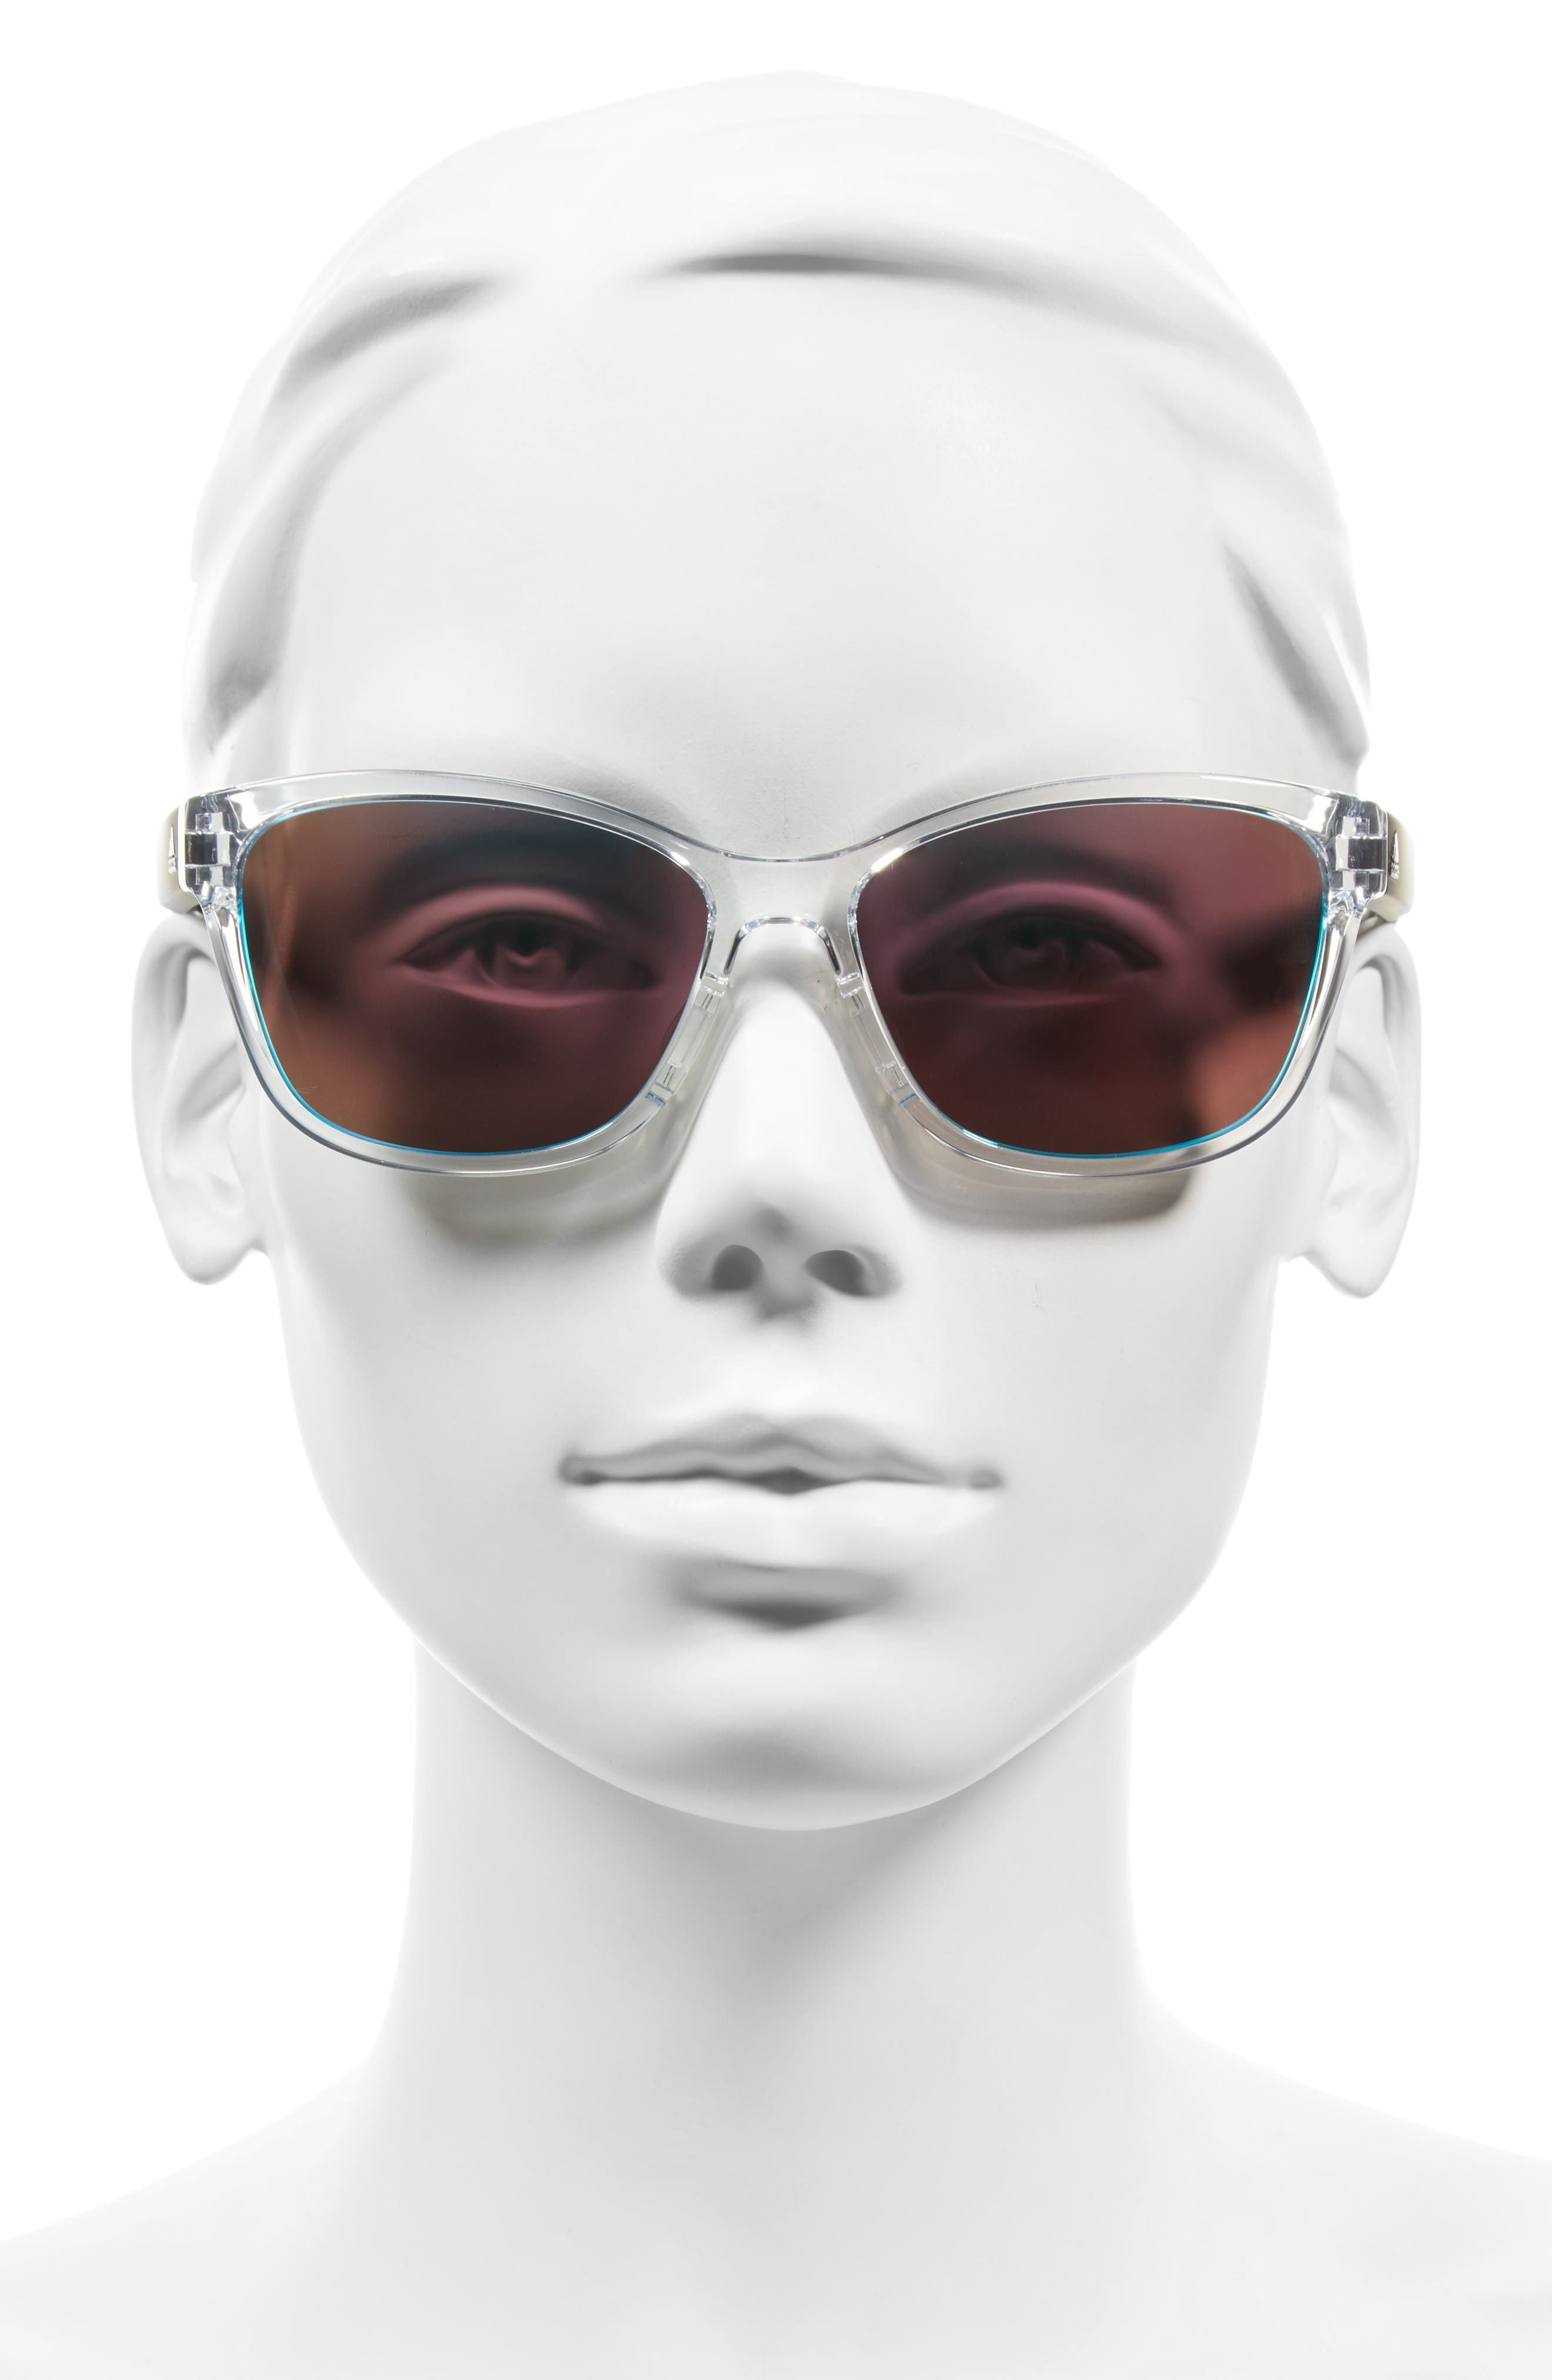 Excalate 58mm Mirrored Sunglasses,                             Alternate thumbnail 2, color,                             Crystal Clear/ Blue Mirror